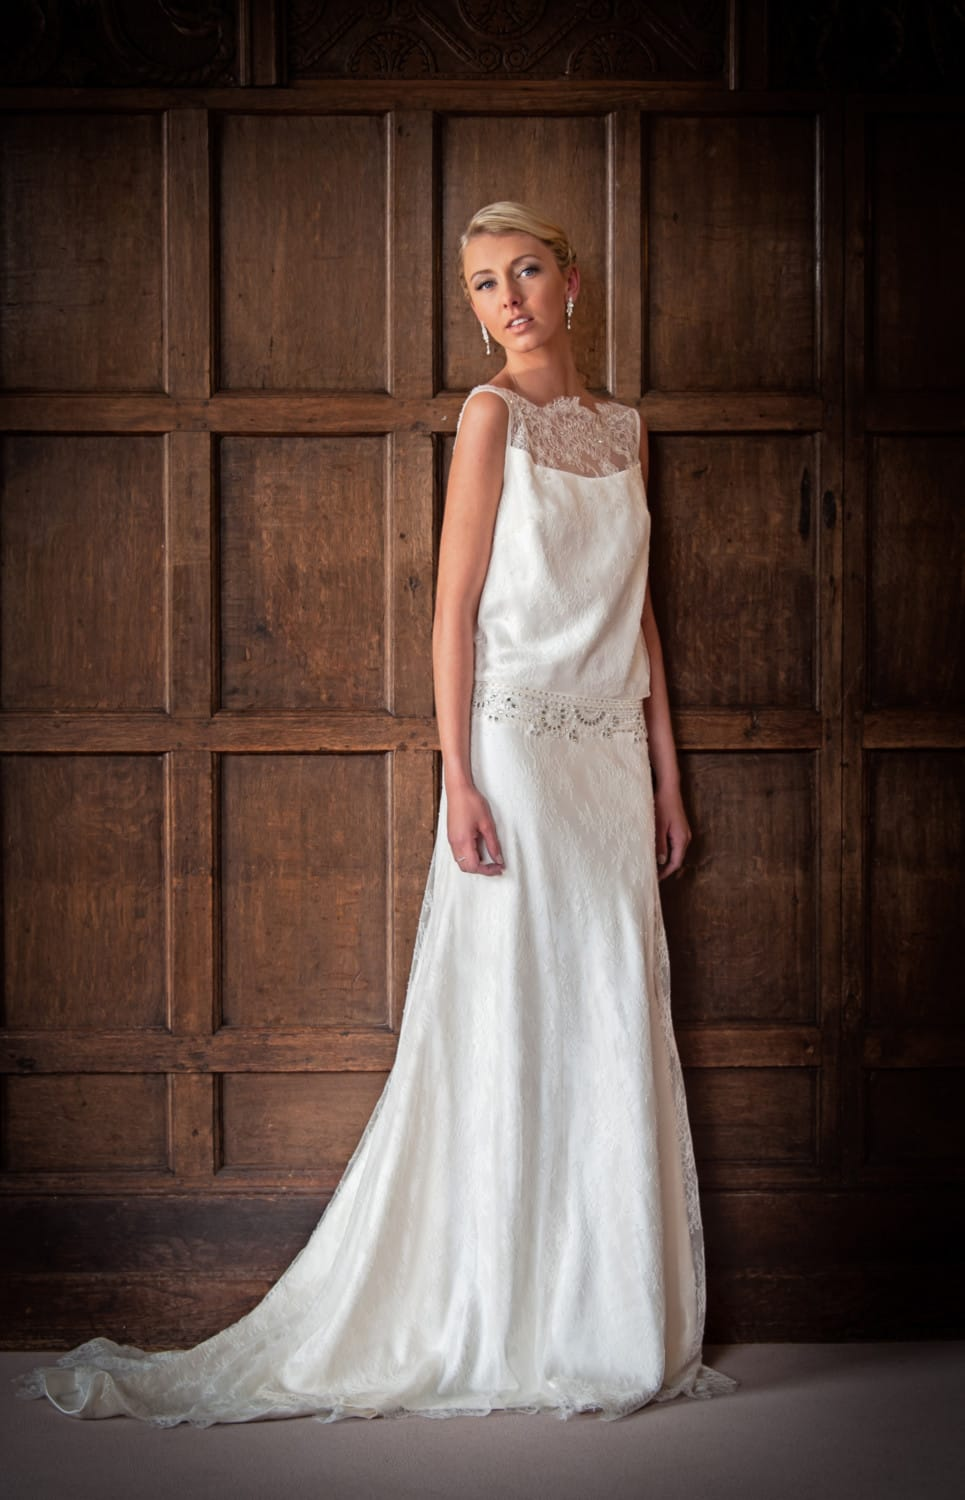 Augusta jones wedding dress sell my wedding dress online for Buy designer wedding dresses online